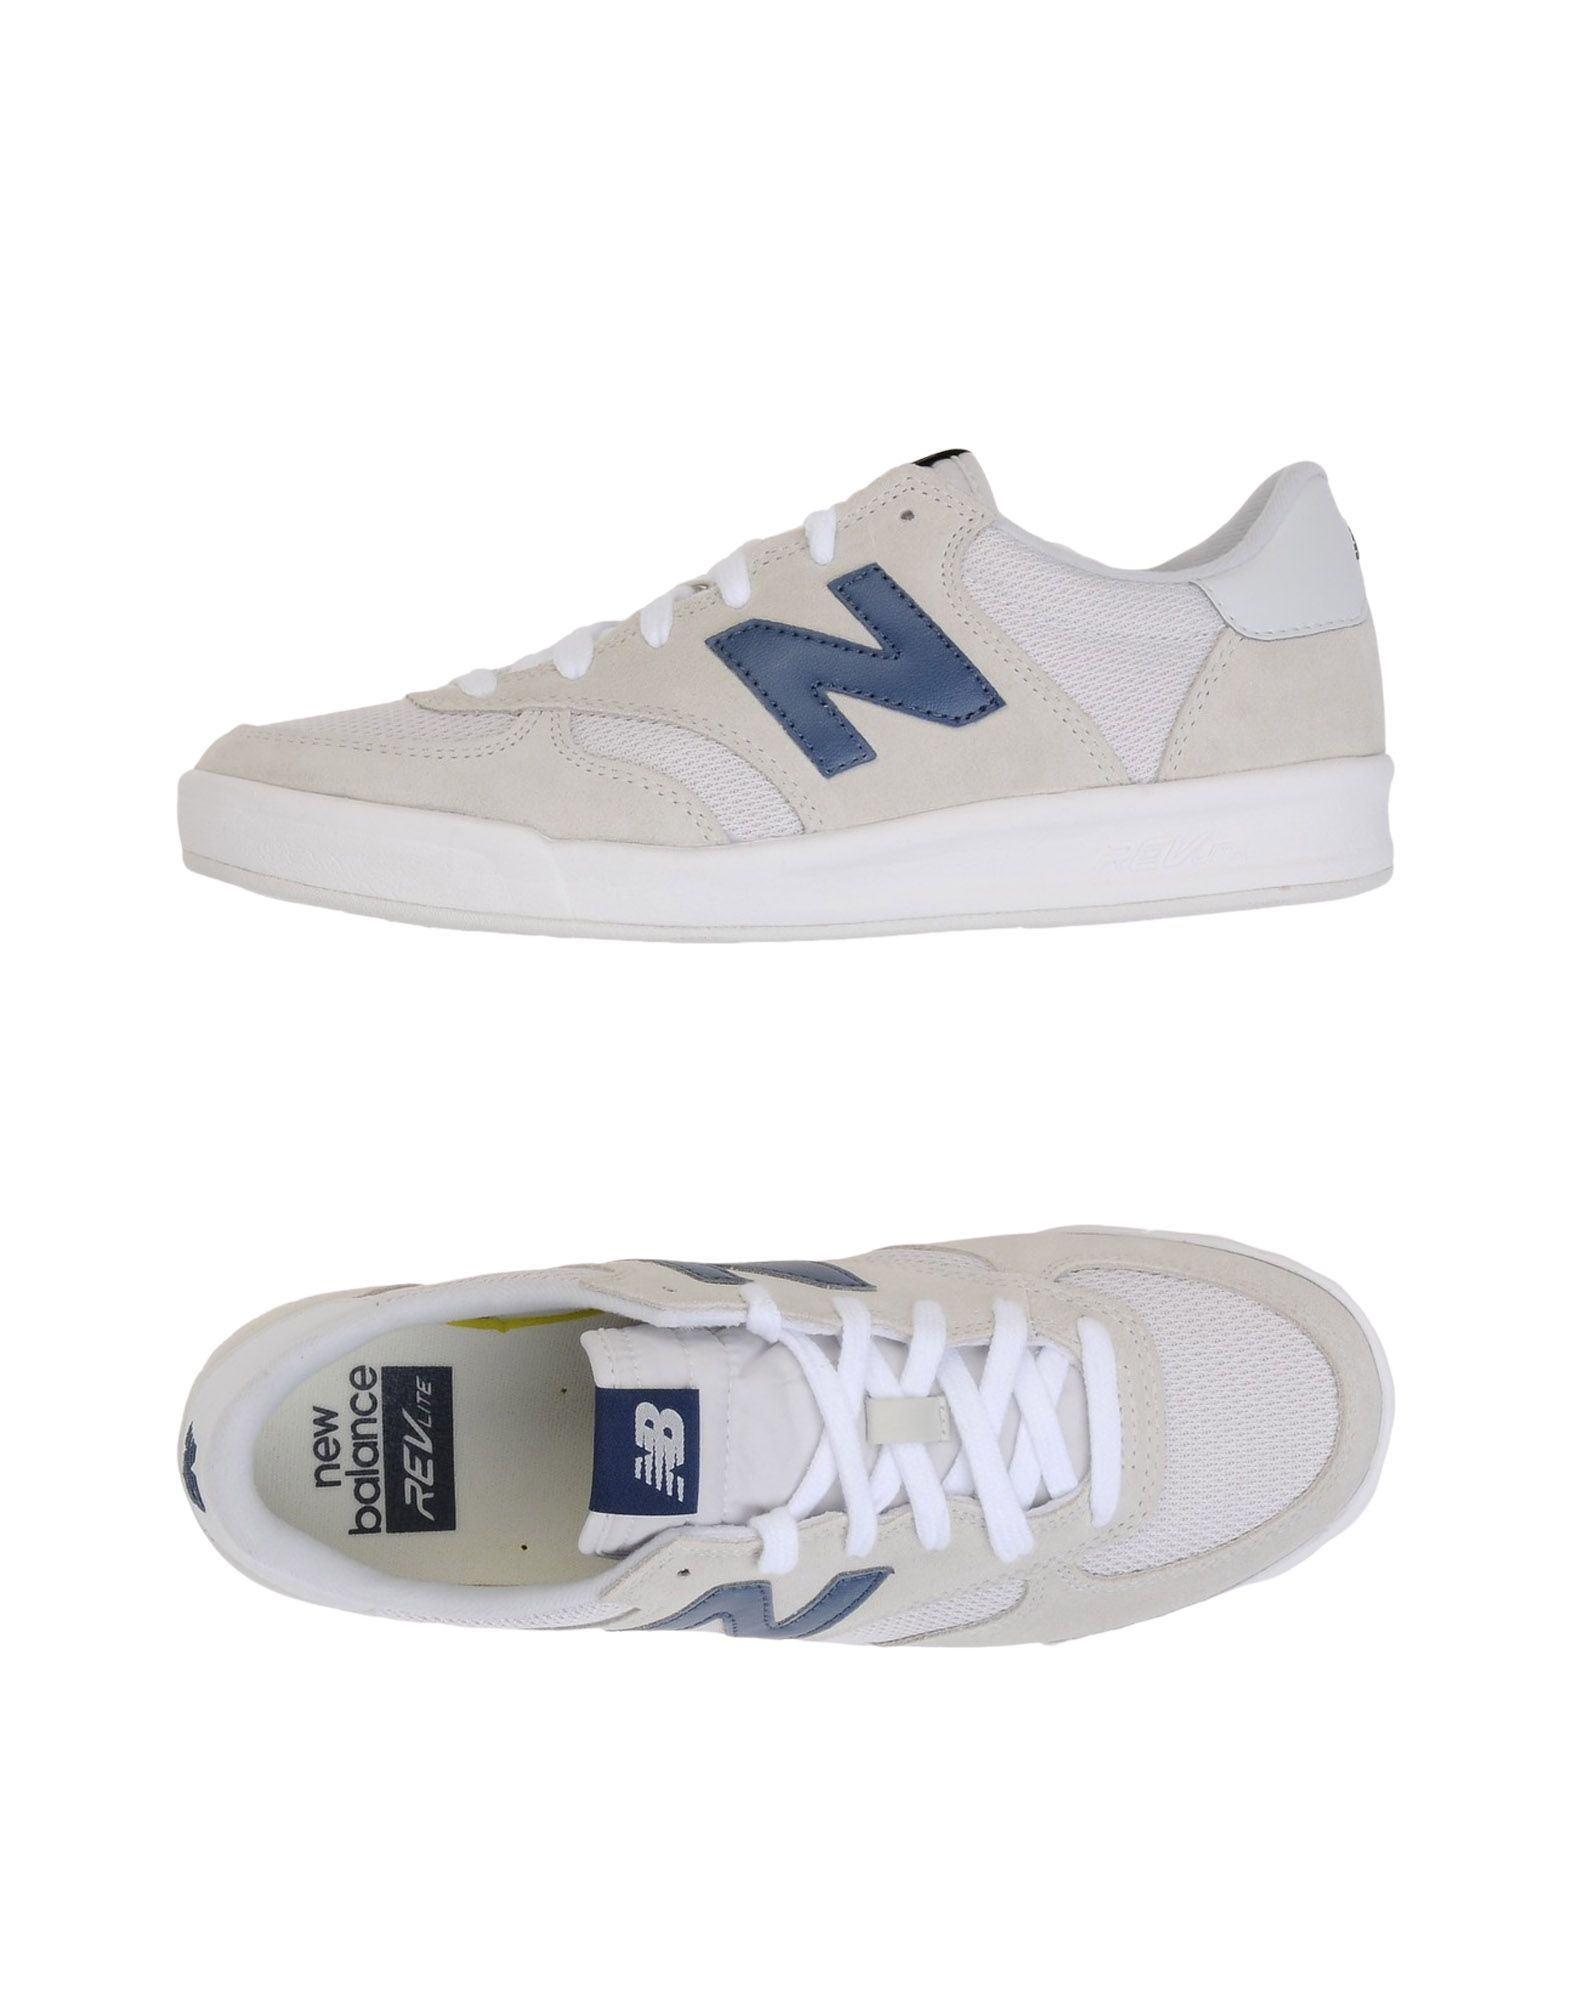 Sneakers New Balance 300 Suede/Mesh - Donna - 11466896PK